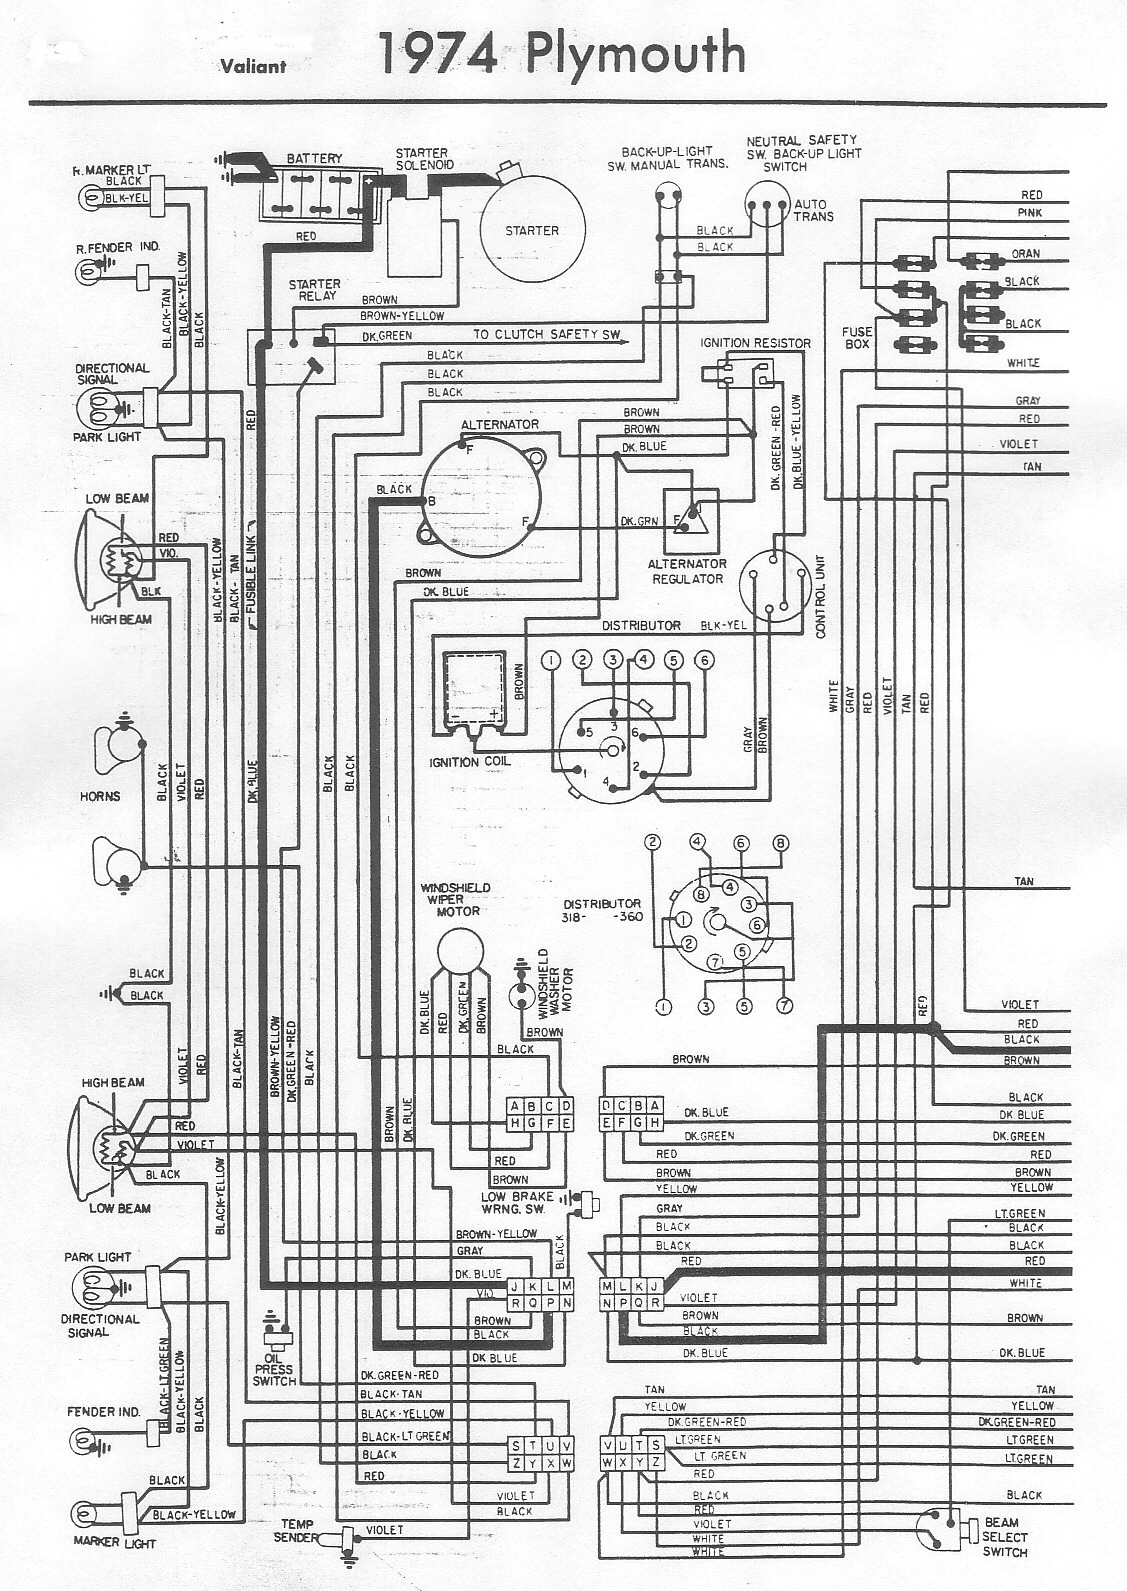 74 Plymouth Duster Wiring Diagram furthermore 67 Camaro Wiring Harness Diagram also 68 Gto Dash Wiring Diagram further Electrical Wiring Diagram Of 1971 Dodge Coro  And Charger furthermore 1969 Nova Fuse Box. on 1967 chevelle engine wiring harness diagram